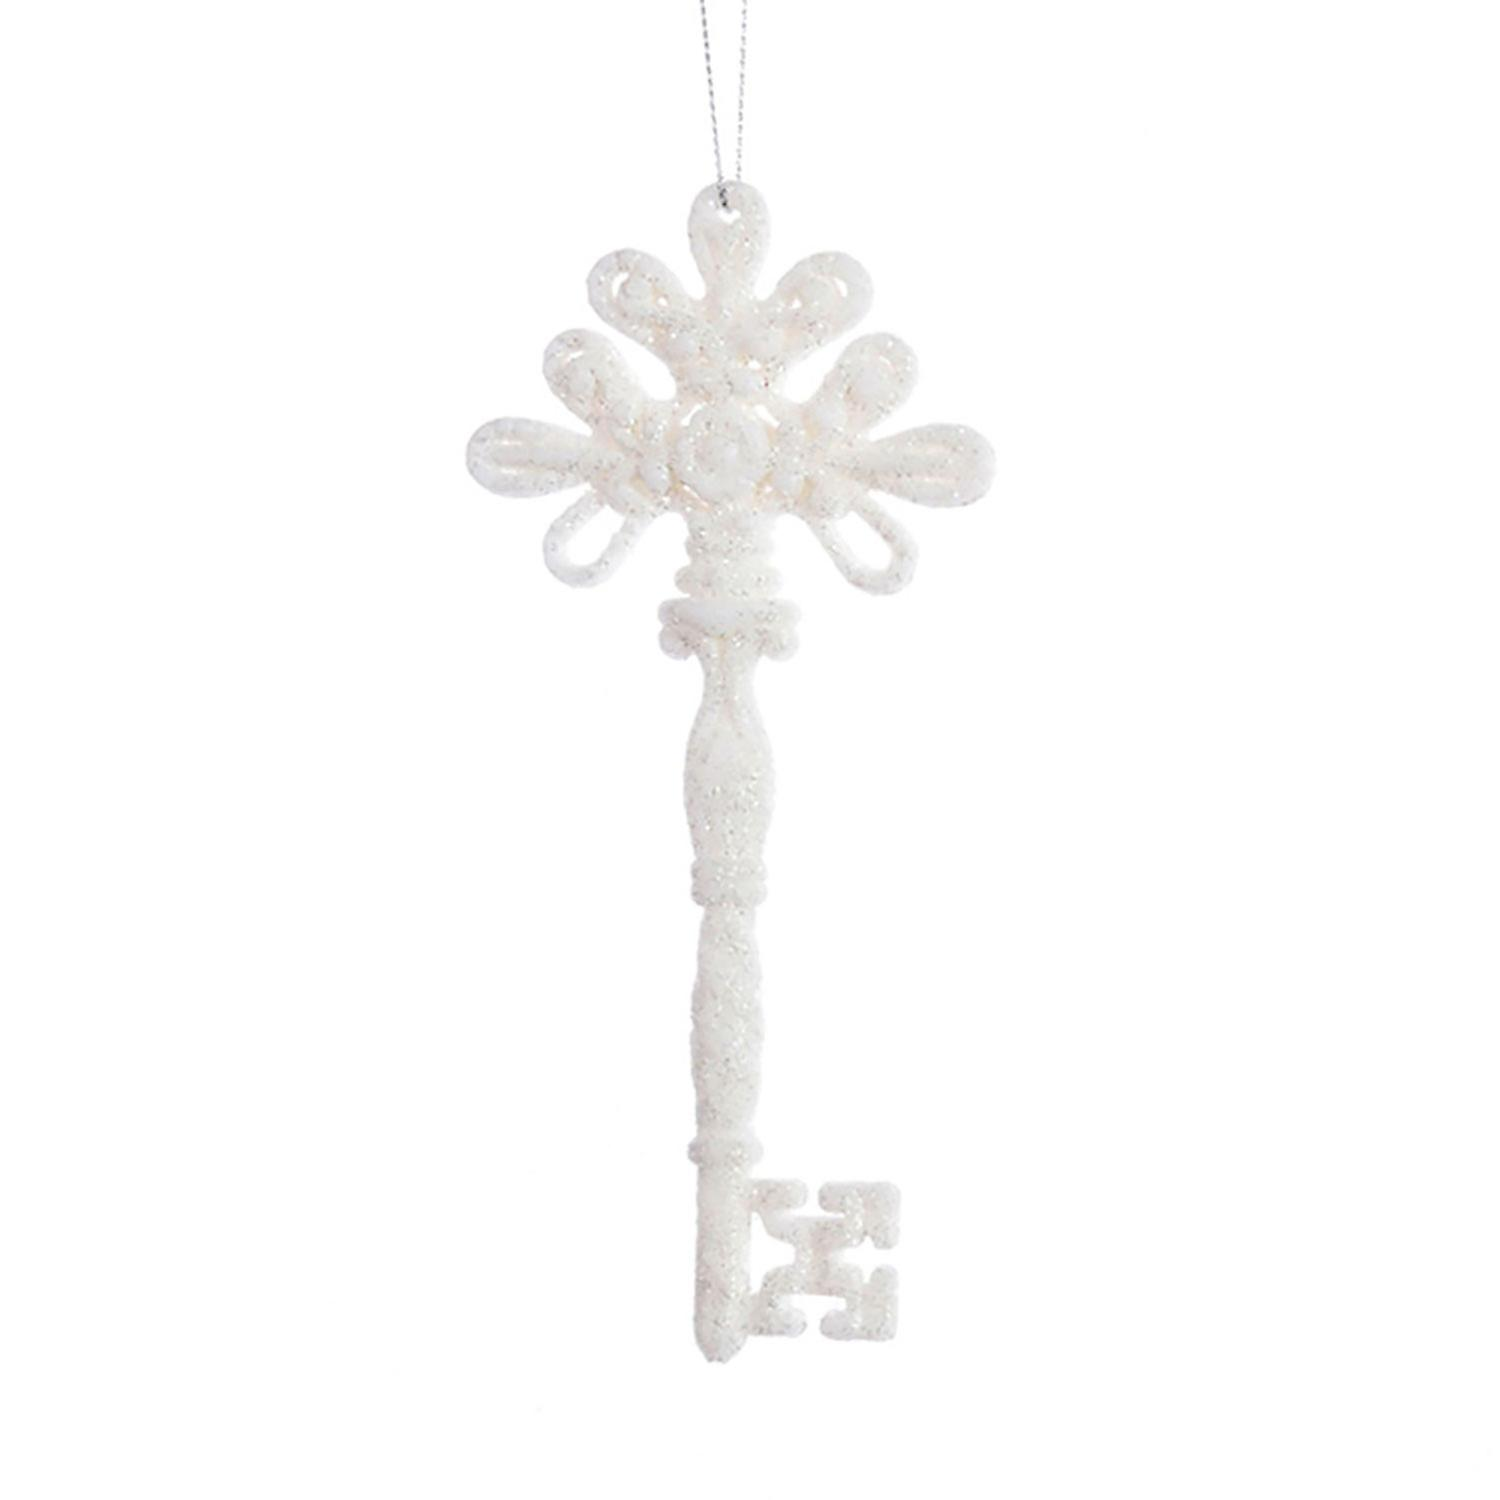 TRIXES Hanging Glitter Key Resin Christmas Decoration Gift Charm Colour White